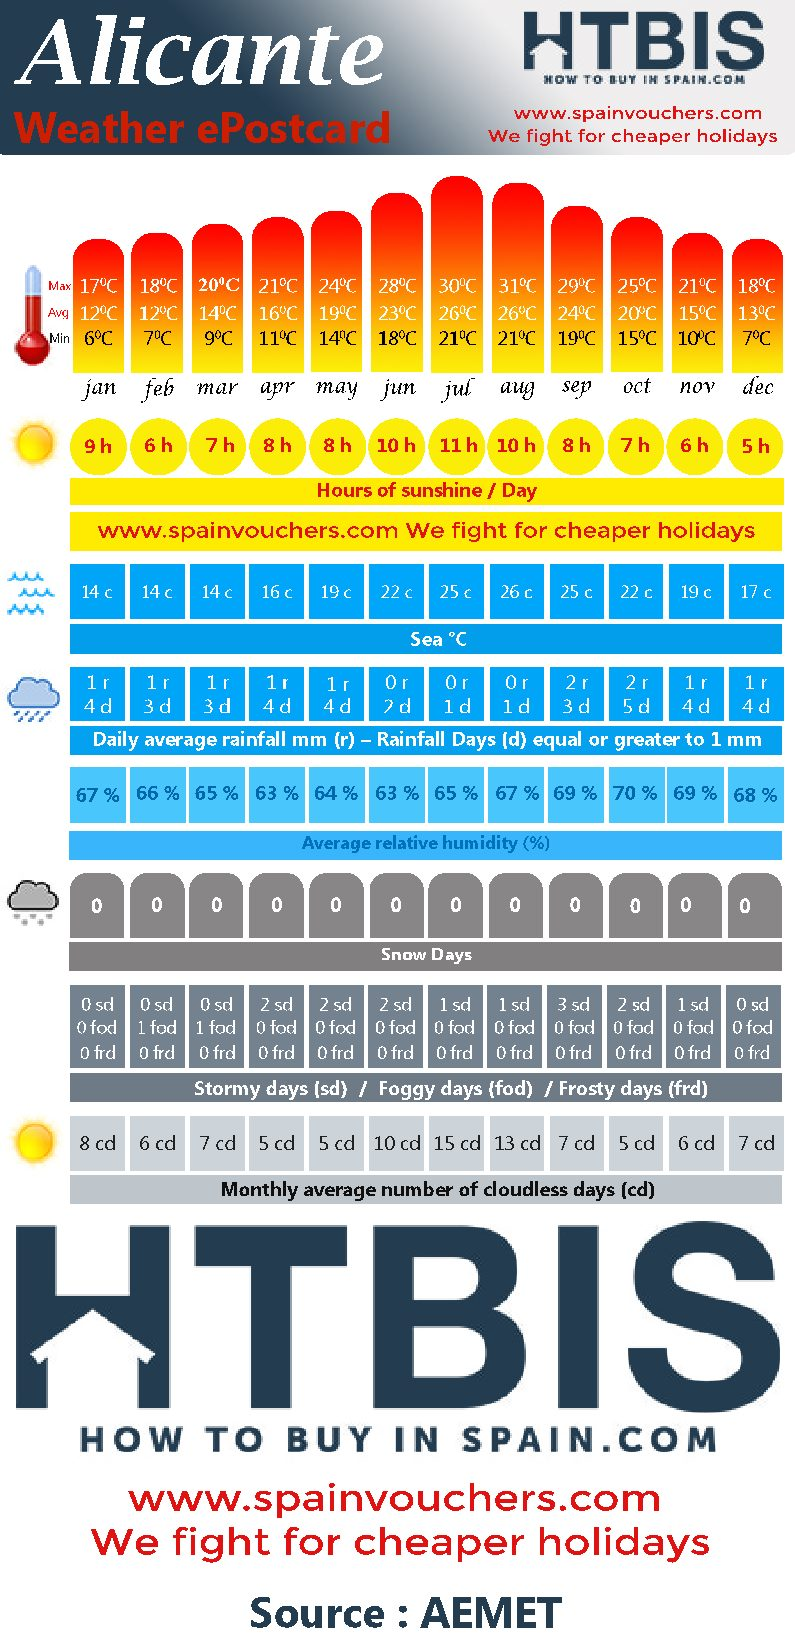 Alicante, Weather statistic Infographic